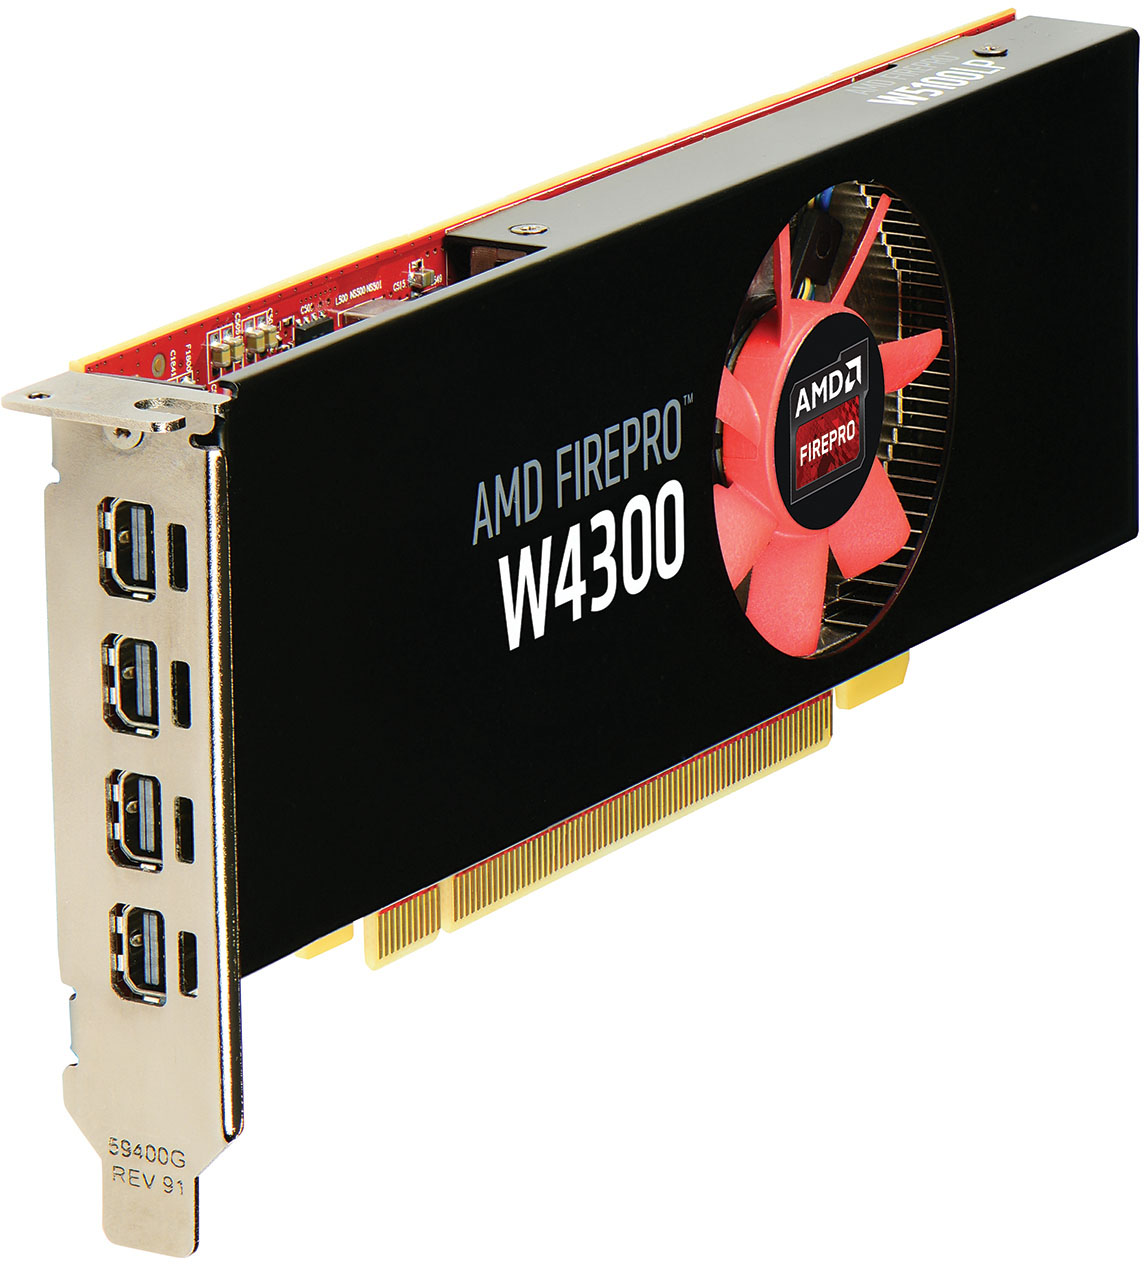 A Quick Look At AMD's FirePro W4300 Workstation Graphics